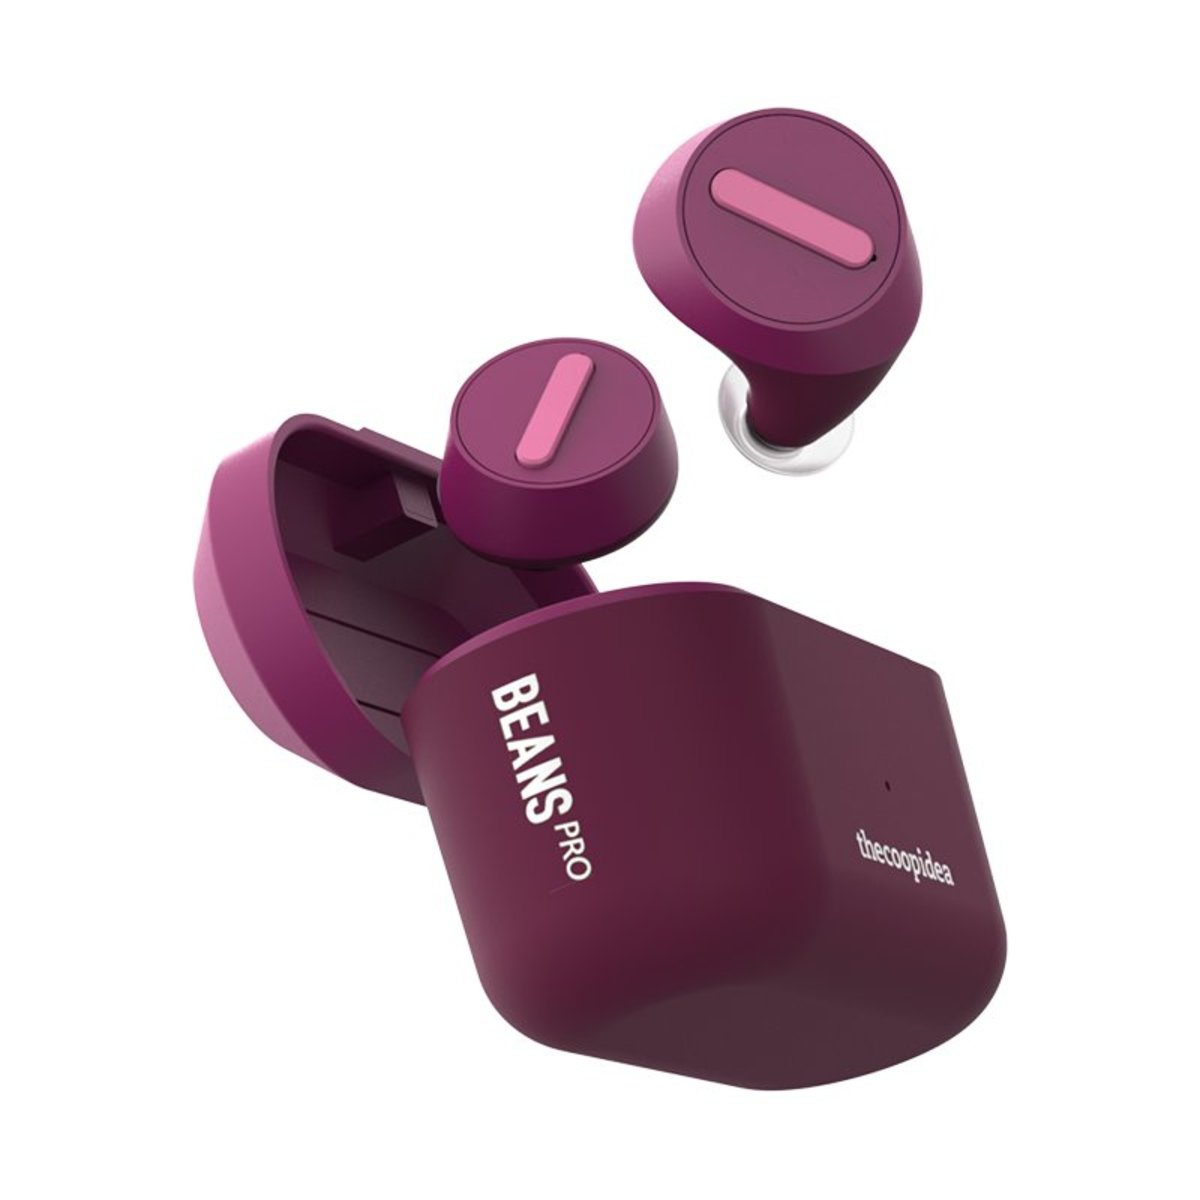 BEANS PRO Active True Wireless Earphones with Wireless Charging Case ( Pink)